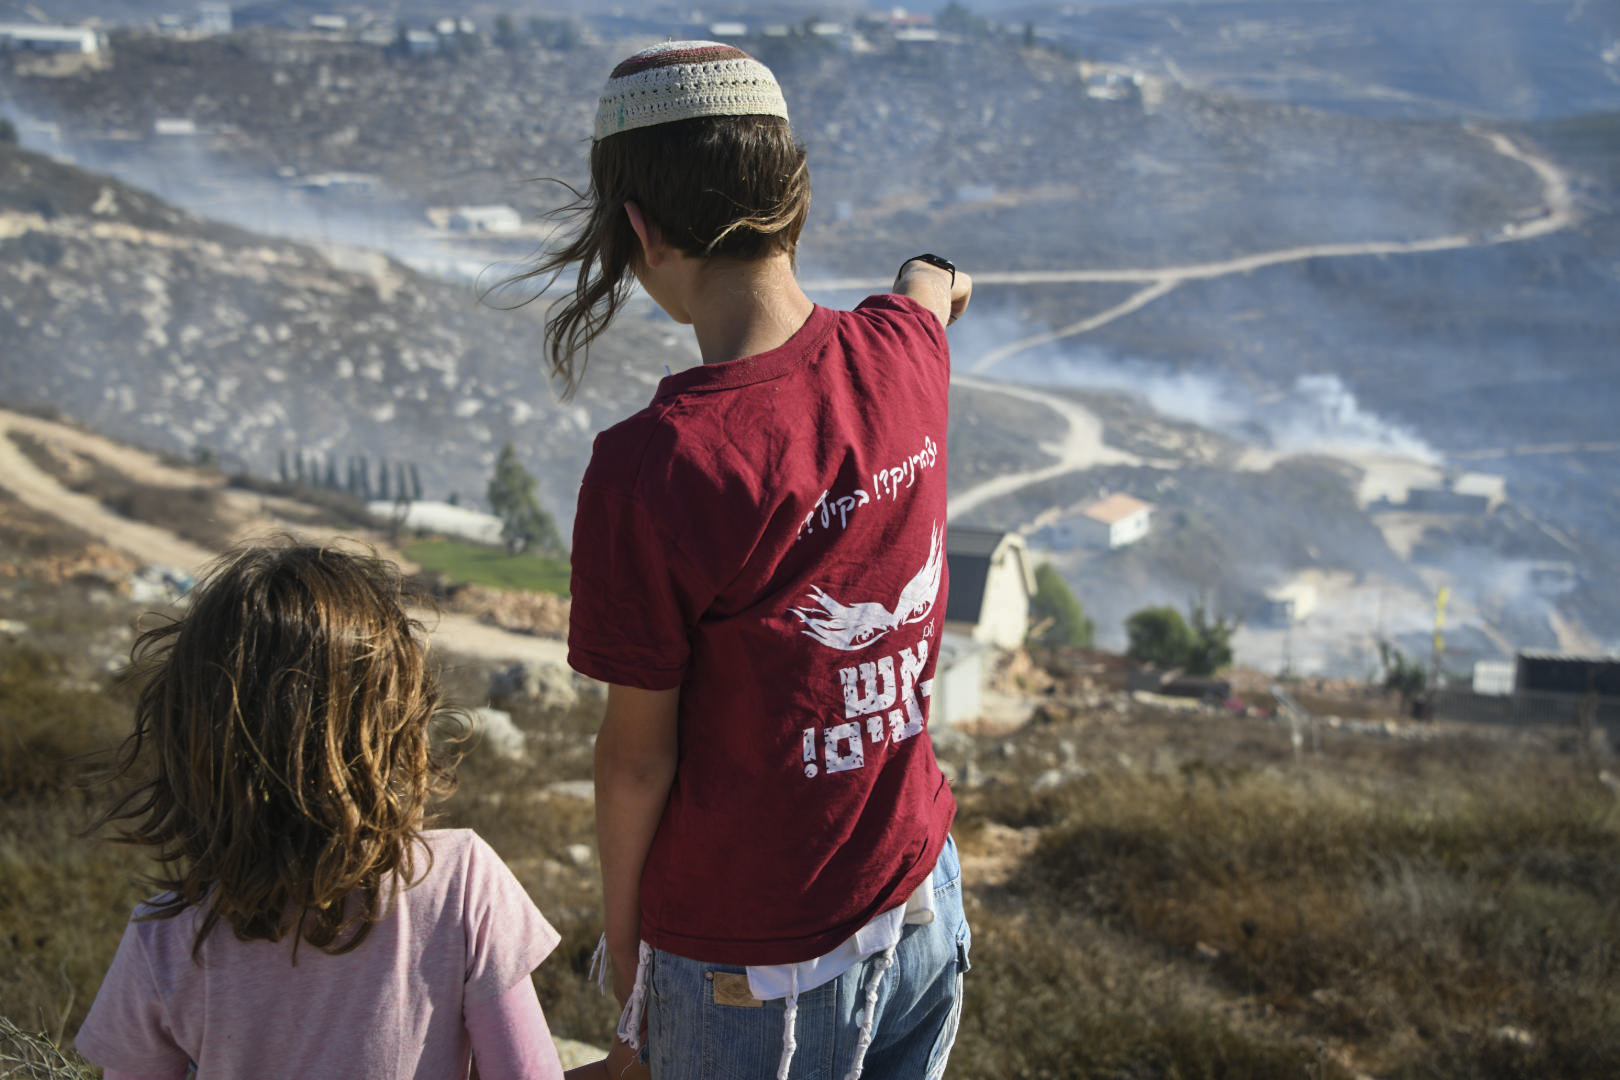 Jewish children look at a forest fire raging in Yitzhar, in the West Bank, on August 15, 2019. (Sraya Diamant/Flash90)